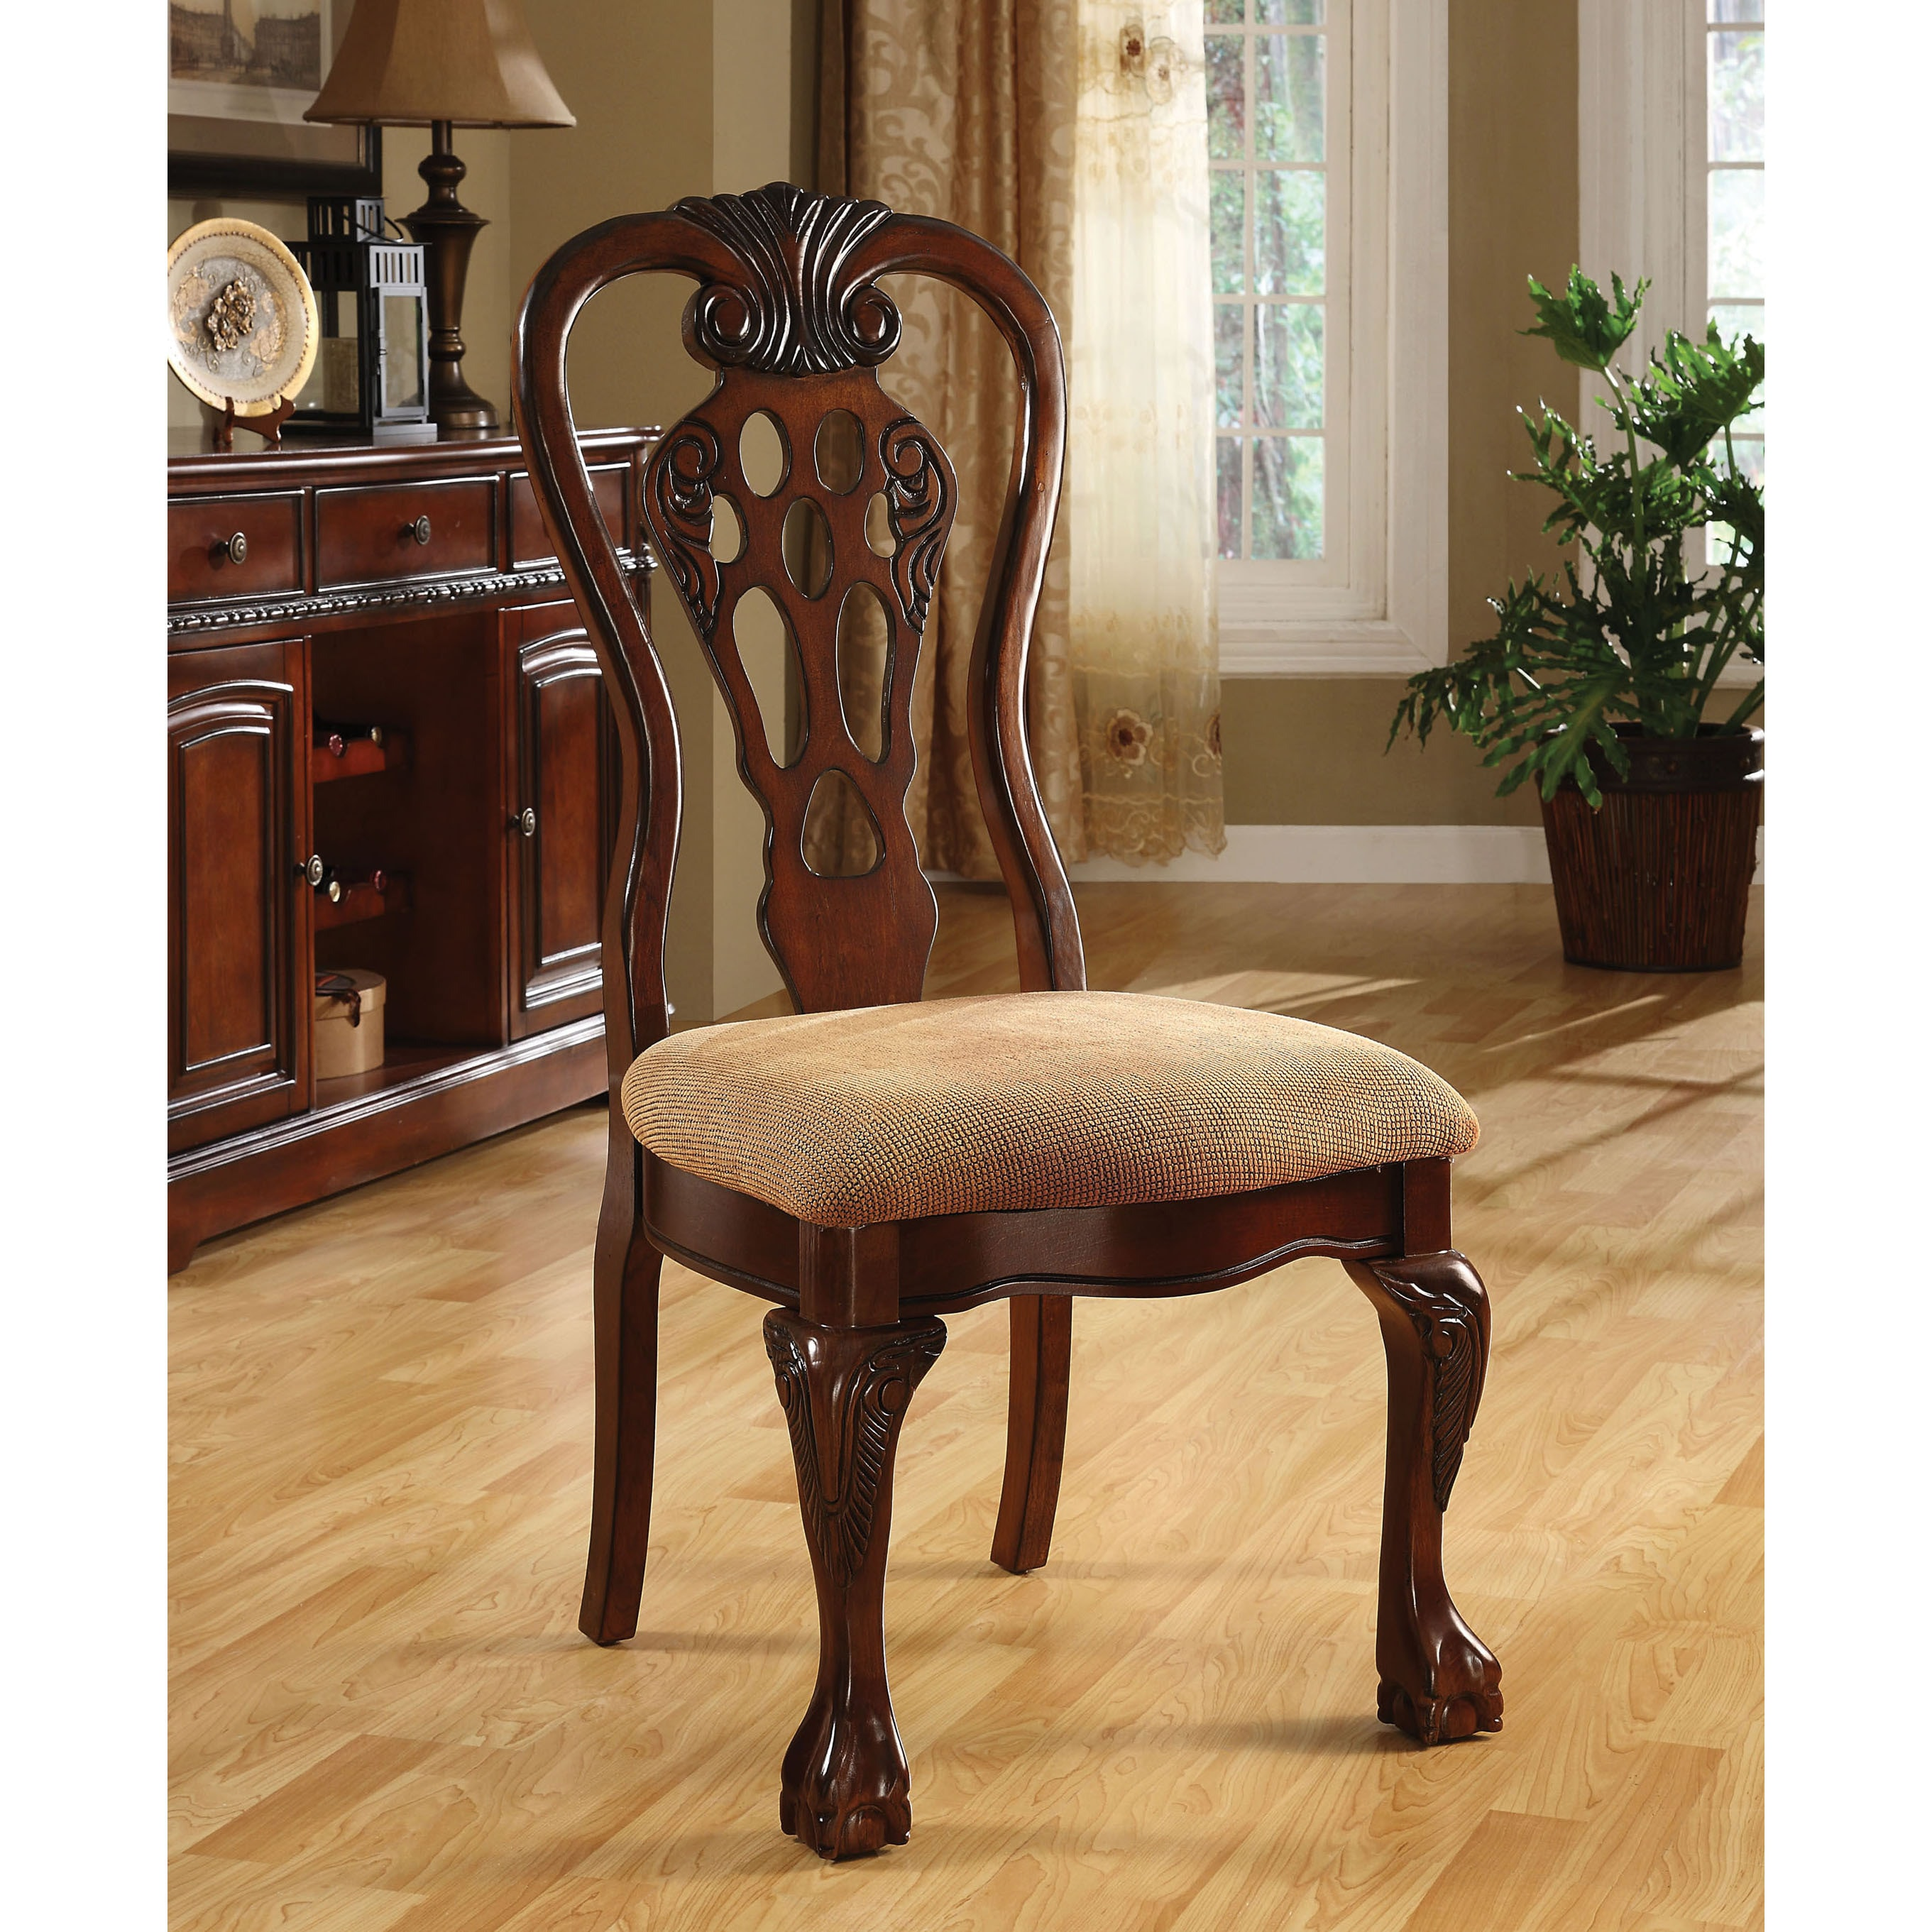 Gracewood hollow mccaffrey cherry dining chair set of 2